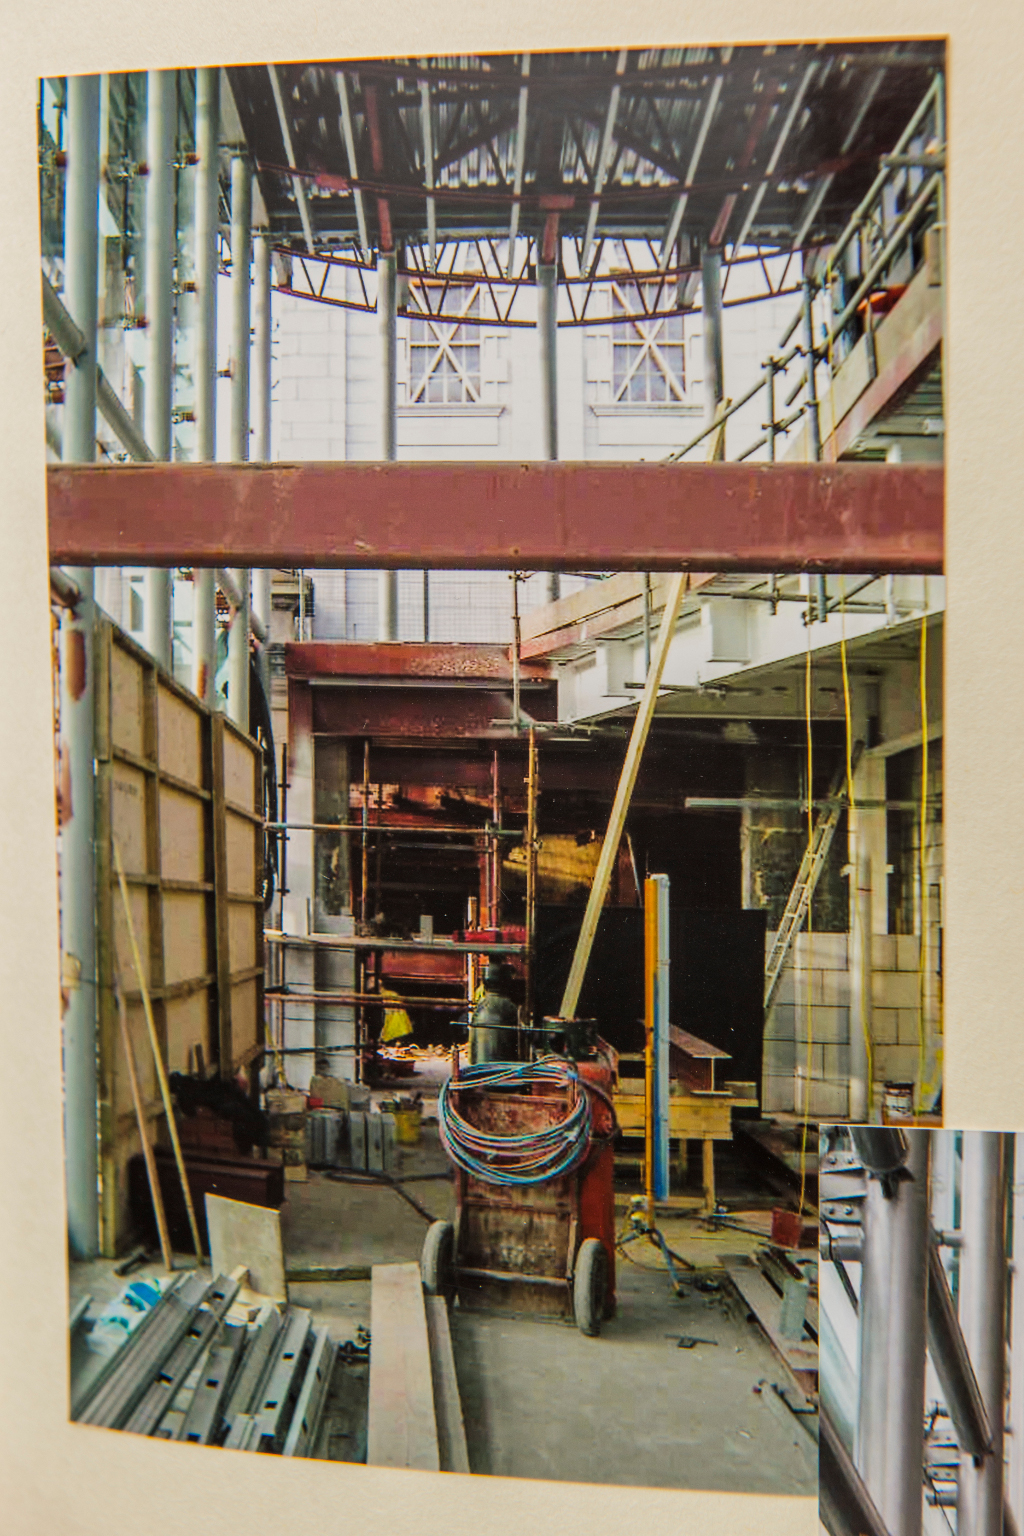 Lawrence-Milne-Projects-Commercial-Majesty-Theatre-26